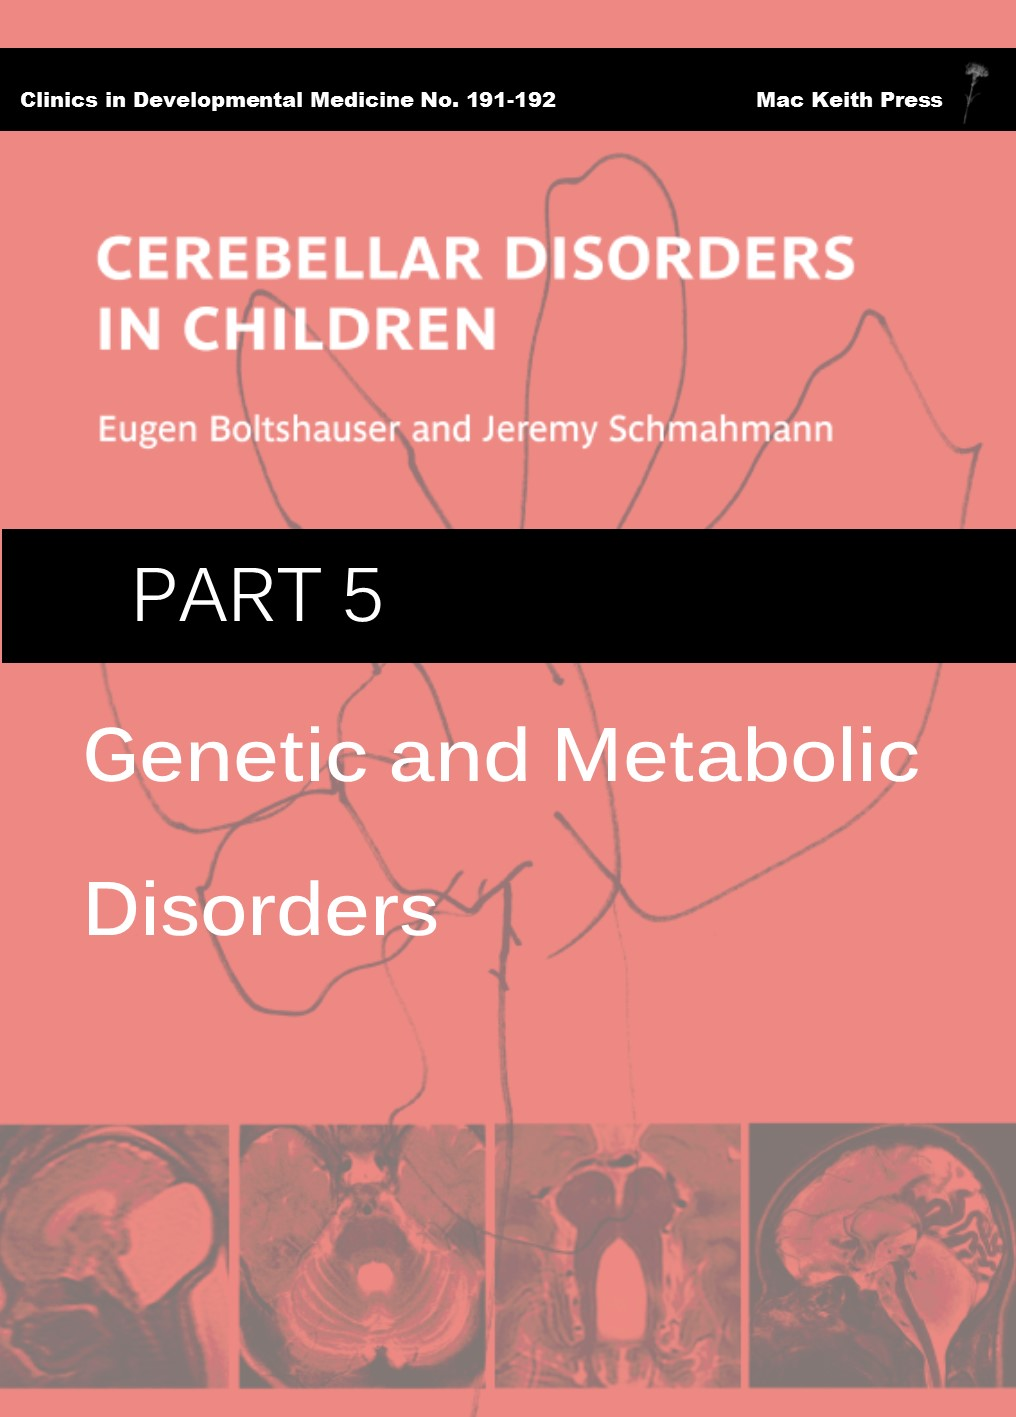 Cerebellar Disorders in Children - Part 5: Genetic and Metabolic Disorders COVER